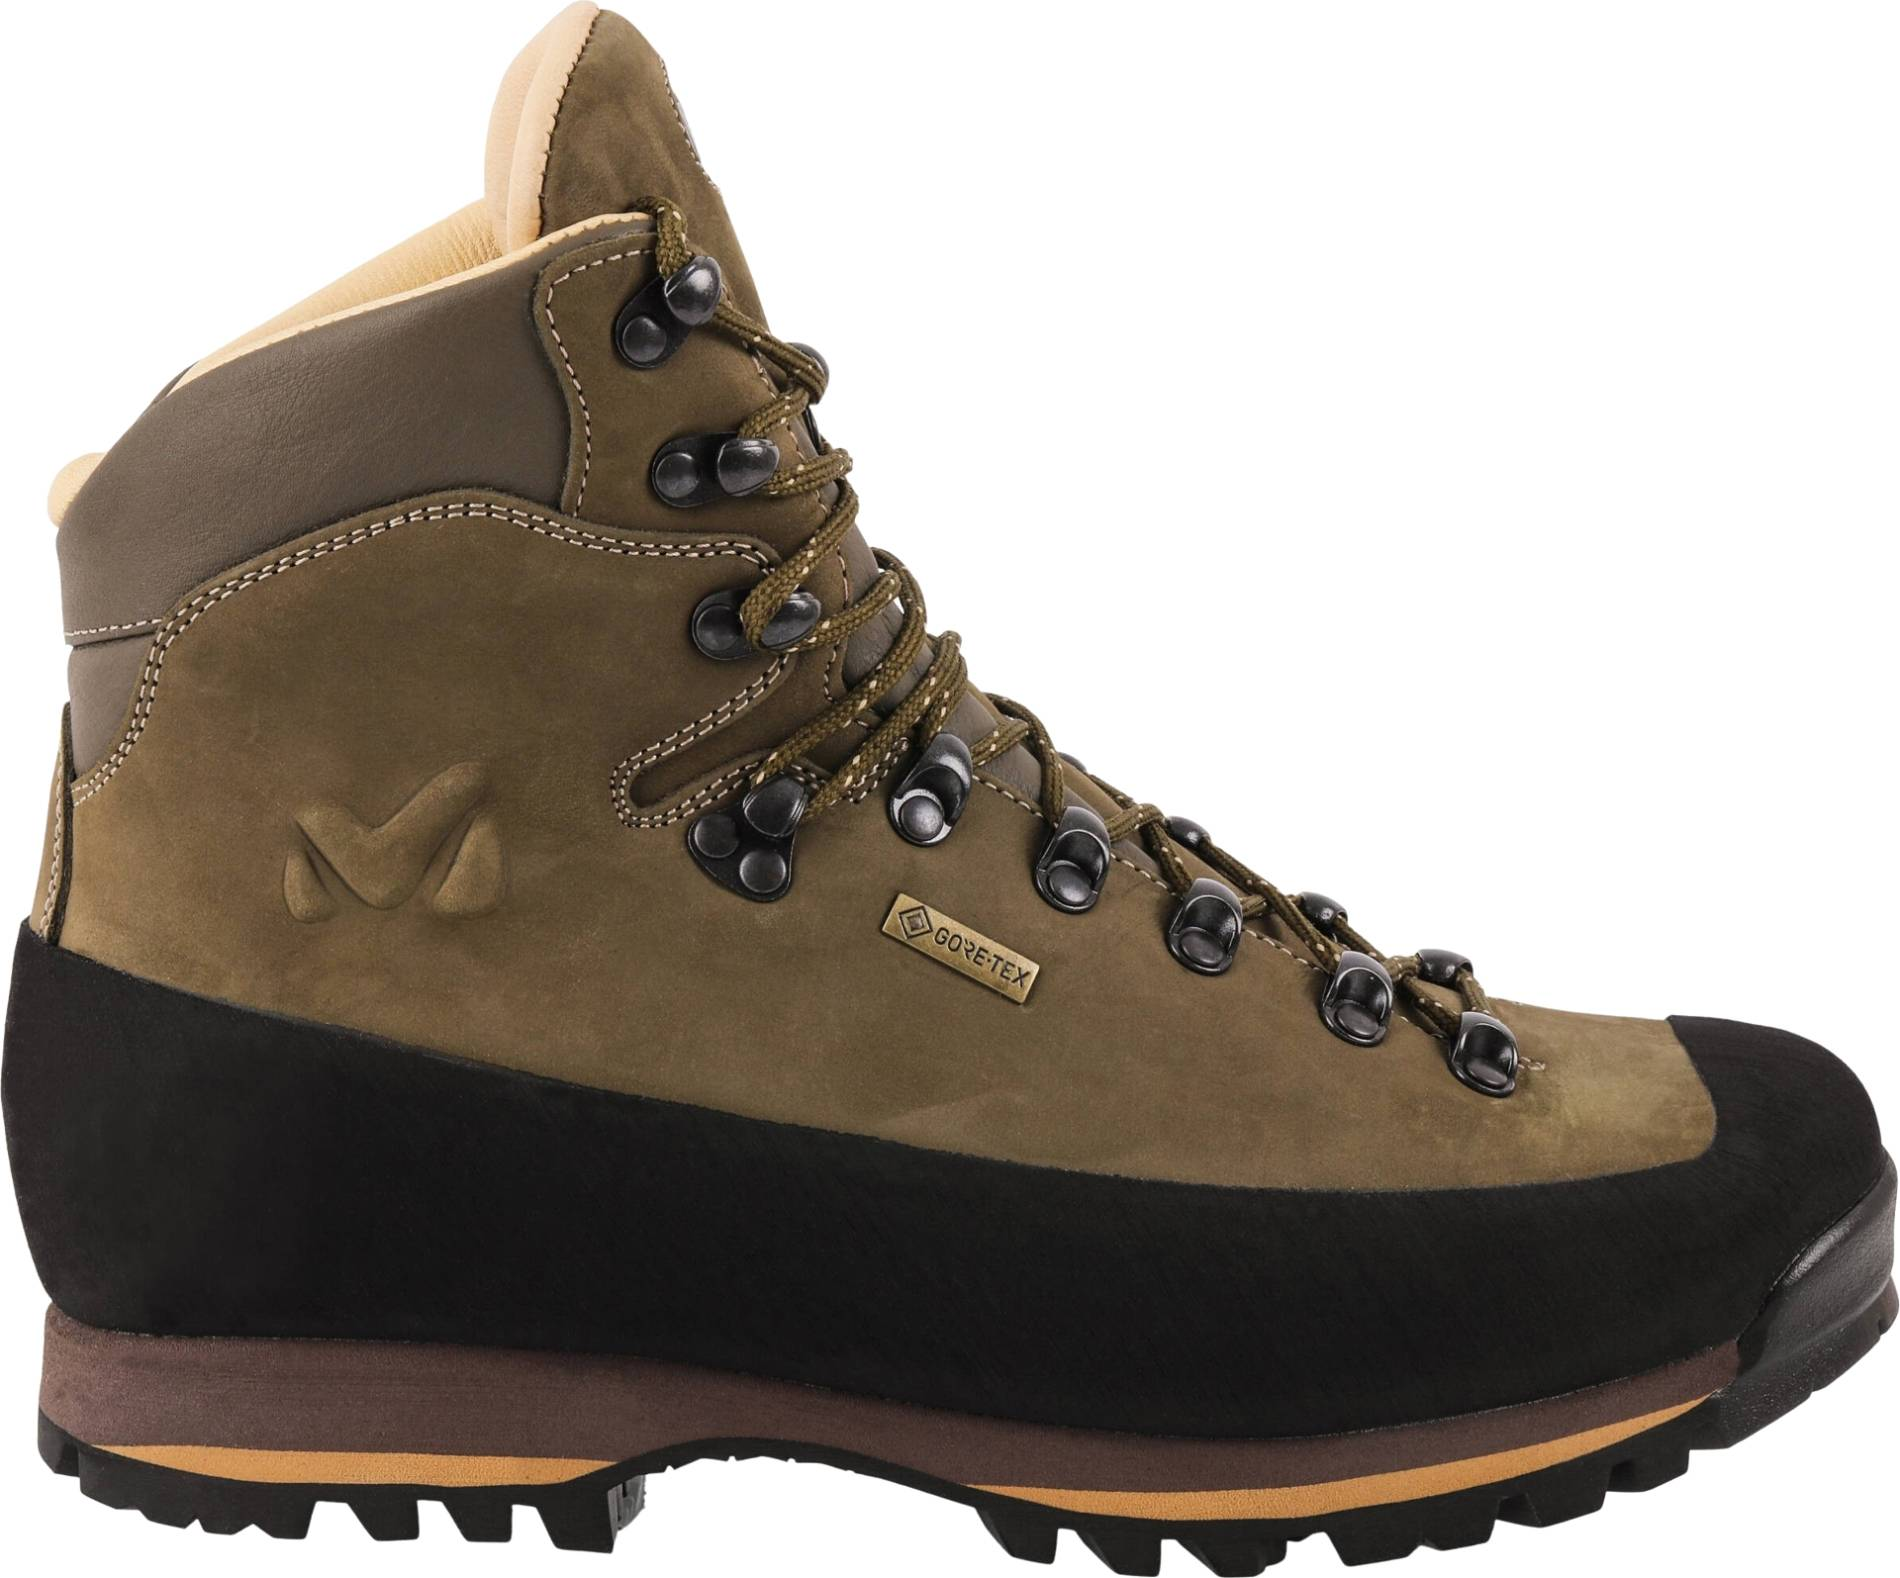 Save 13% on Wide Toe Box Hiking Boots